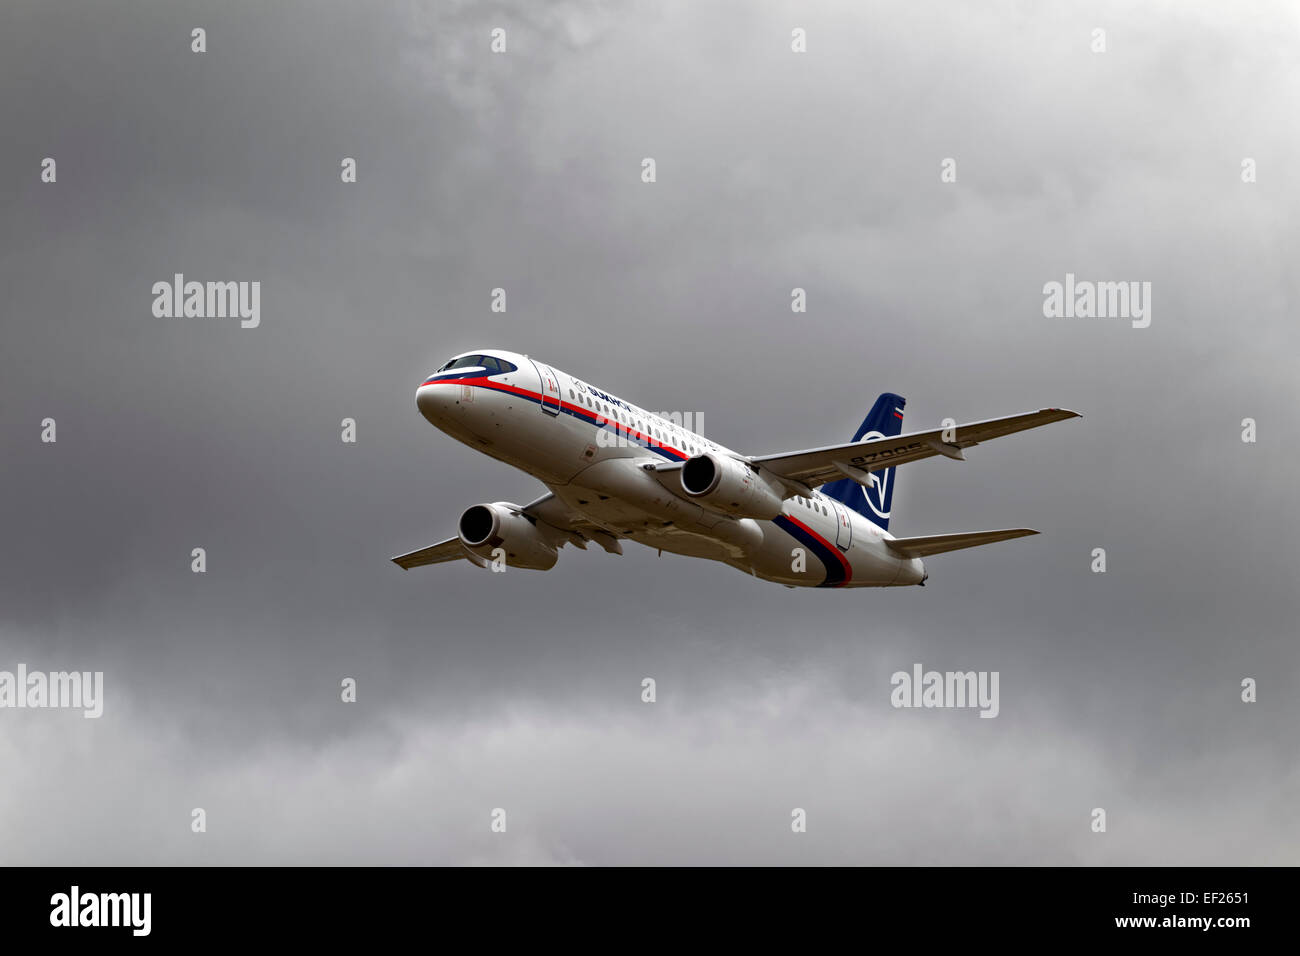 A Sukhoi Superjet 100, RA-97005, from the Sukhoi Company, Komsomolsk-on-Amur, Russia, at the RIAT, RAF Fairford, - Stock Image